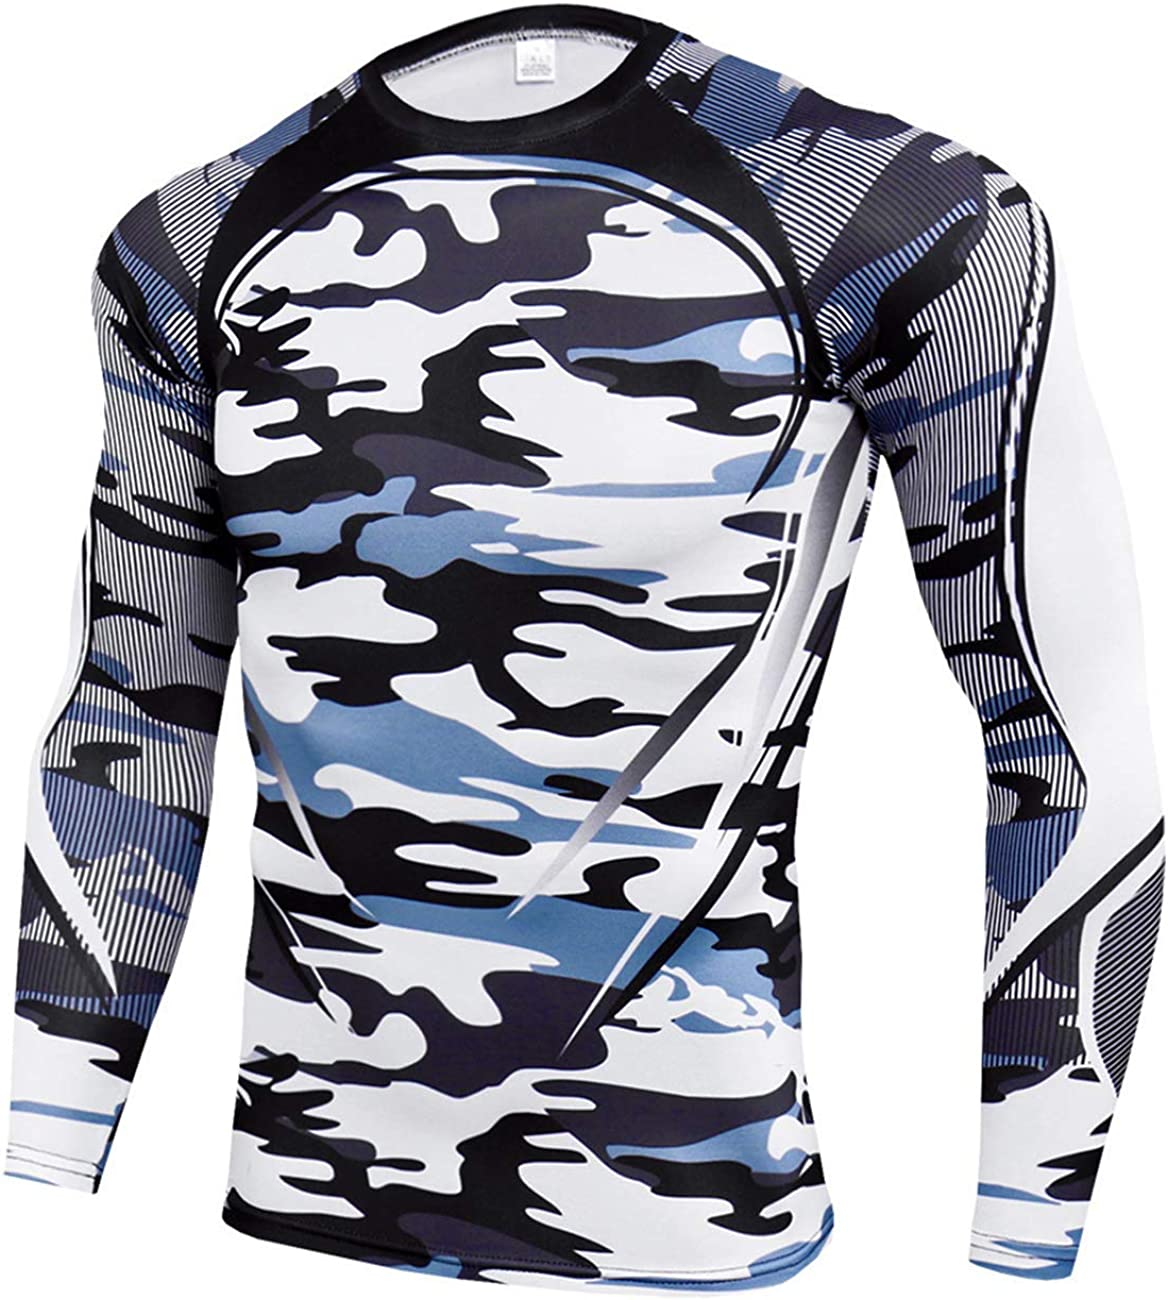 CANGHPGIN Mens Compression Shirts Cool Dry Fit Long Sleeve T-Shirt Athletic Sports Baselayer Workout Running Shirt